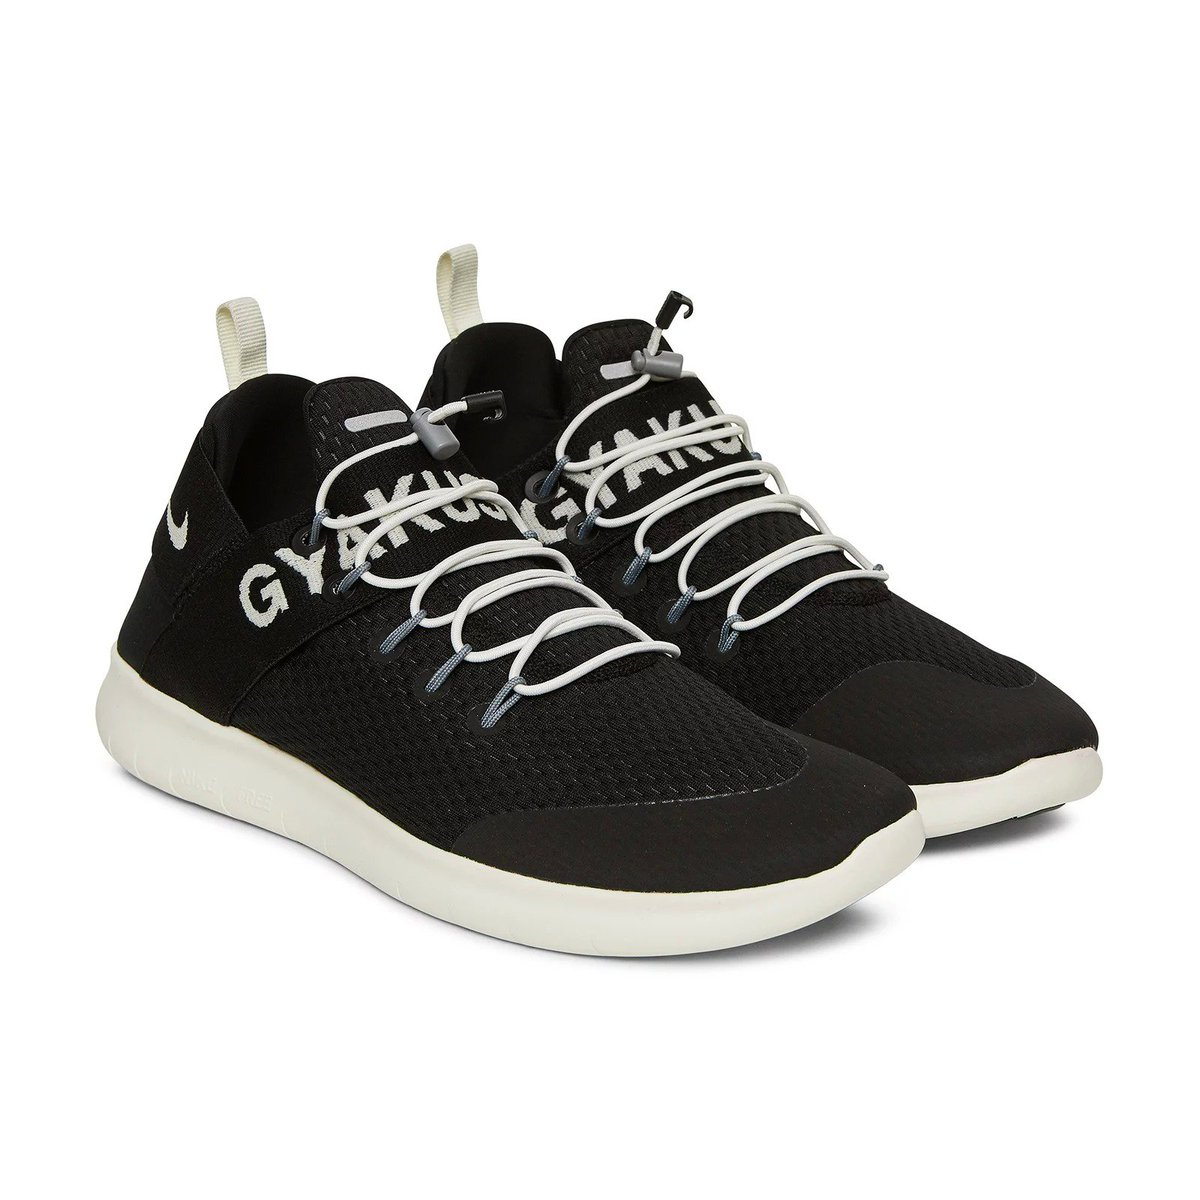 new product d52f0 37f19 MoreSneakers.com on Twitter: